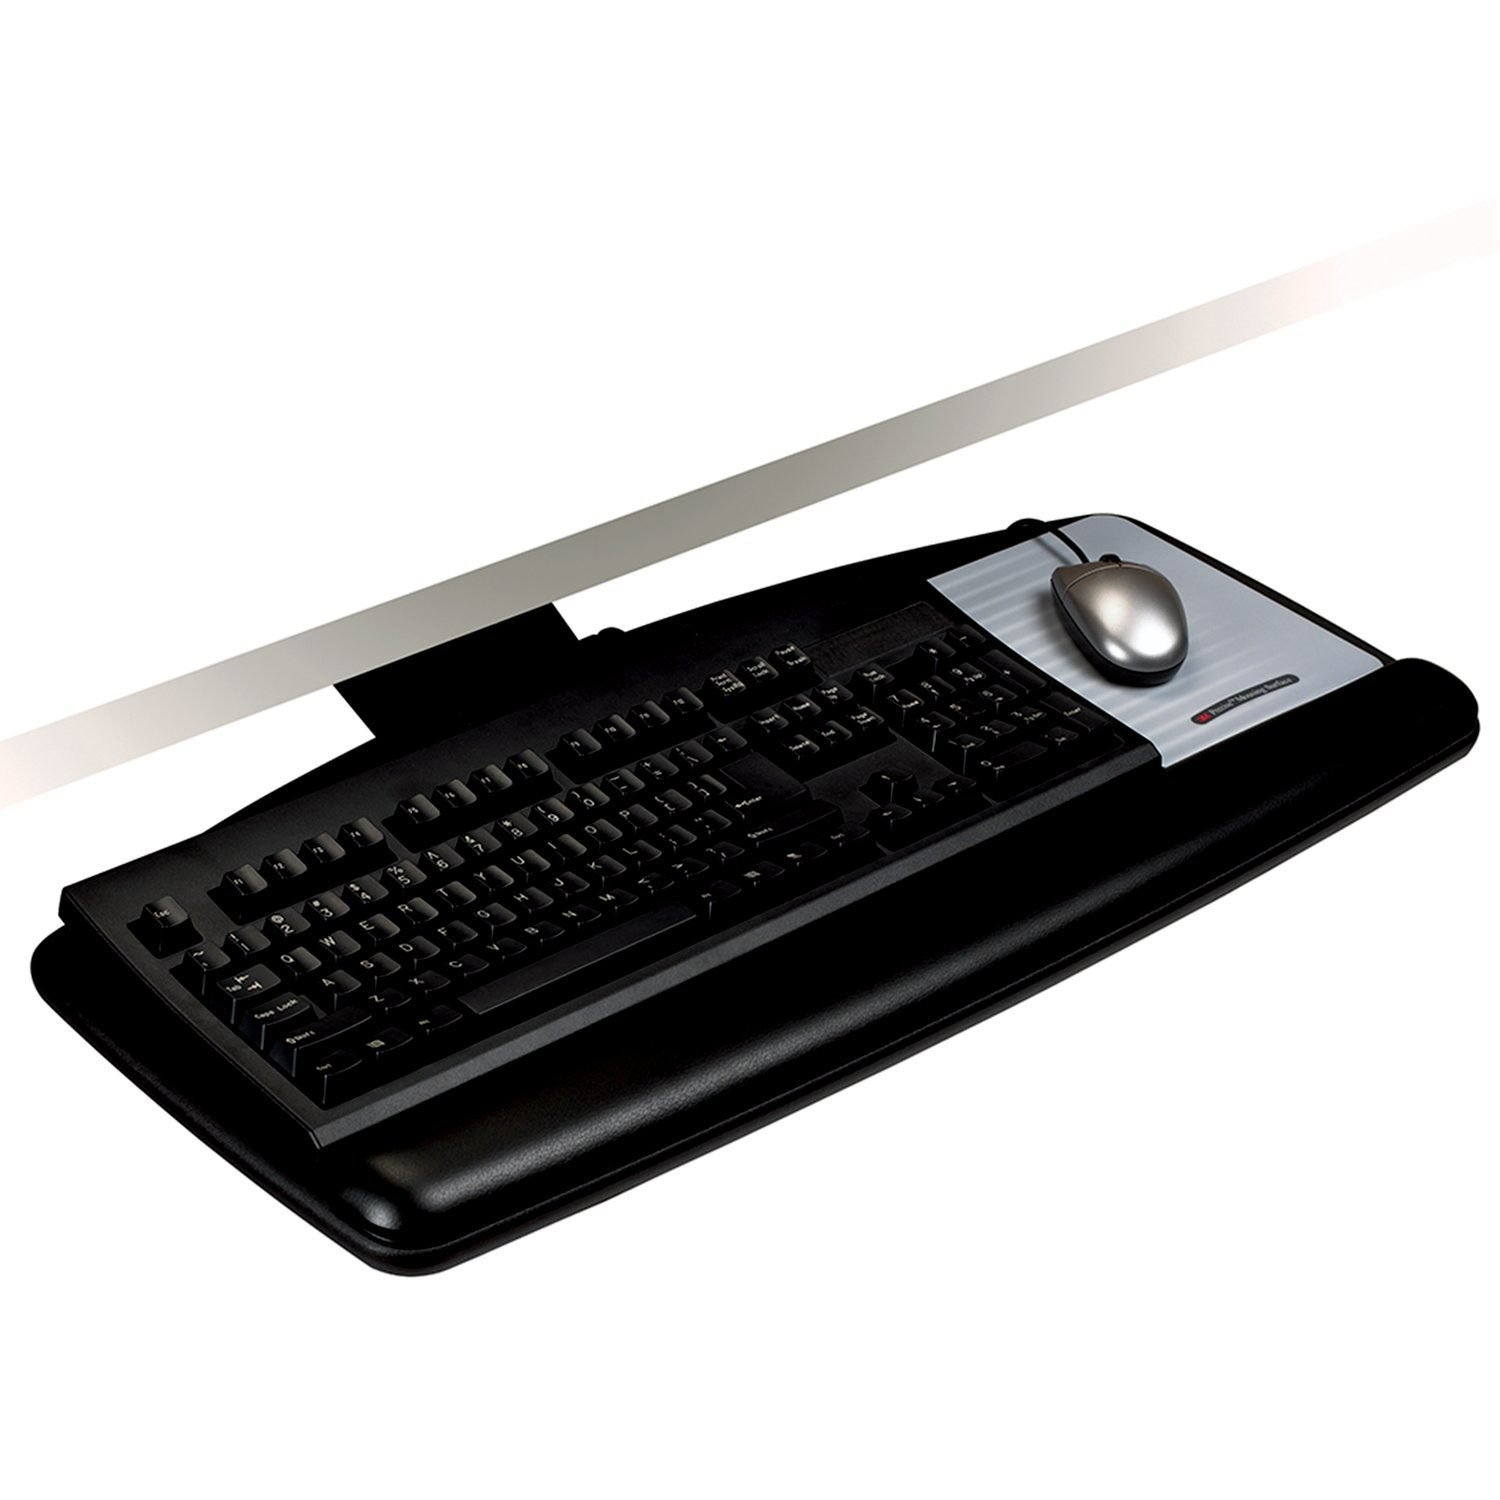 3M Knob Adjust Keyboard Tray, Standard Platform with Antimicrobial Gel Wrist Rest and Precise Mouse Pad, 17-inch Track, Black (AKT60LE)